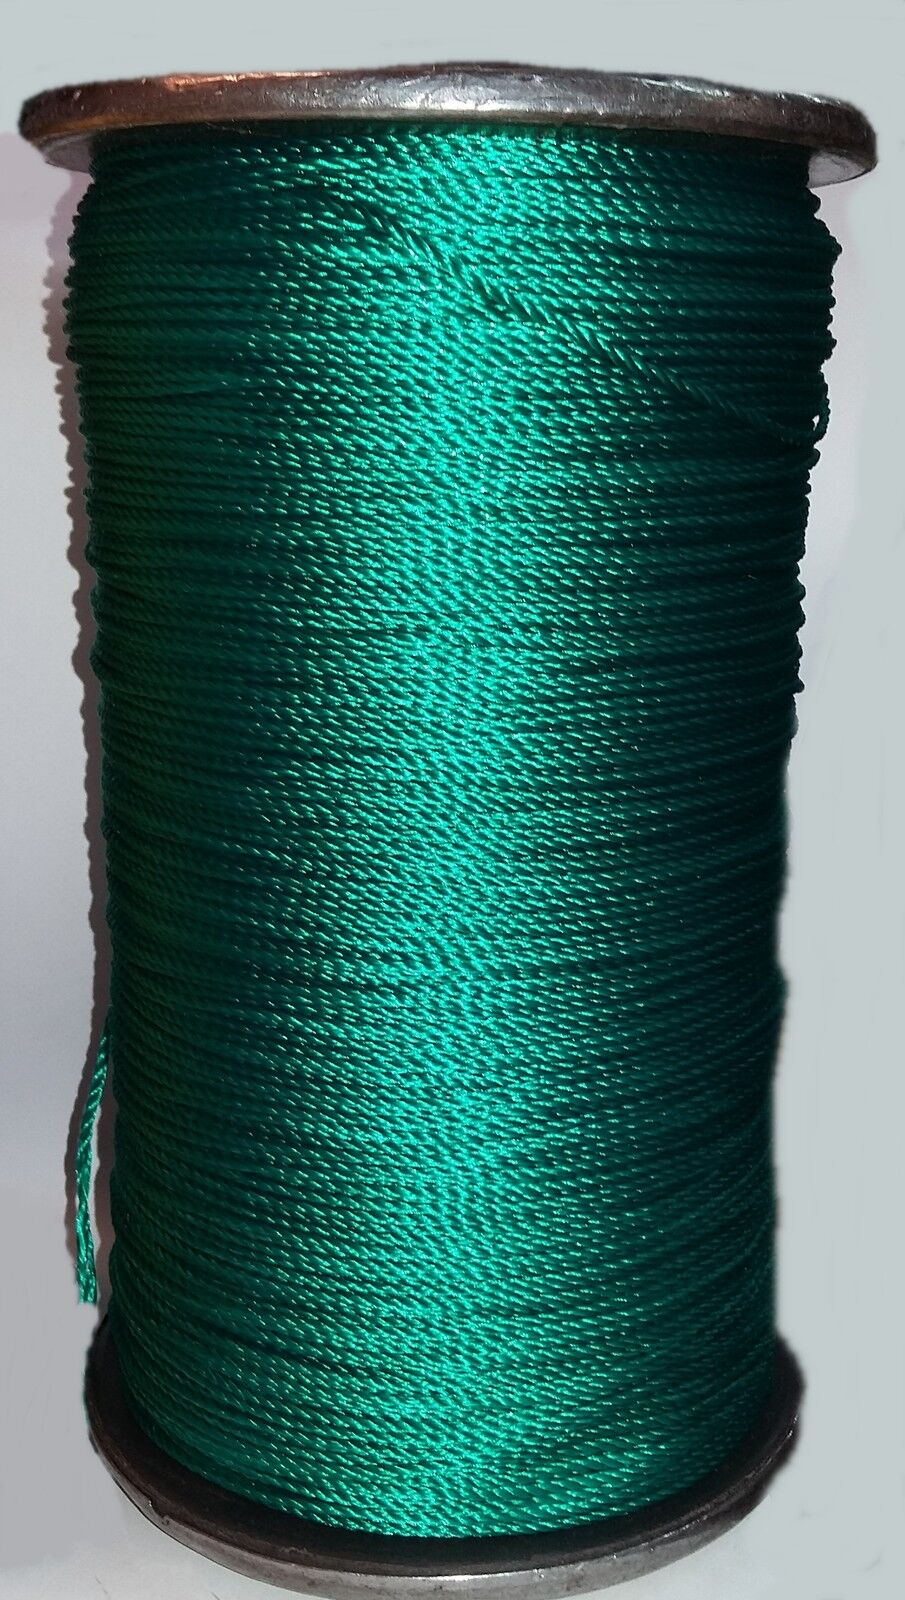 Neon Twisted Polypropylene Cord 2mm Line Tie String Thread Yarn Fibre Poly Rope